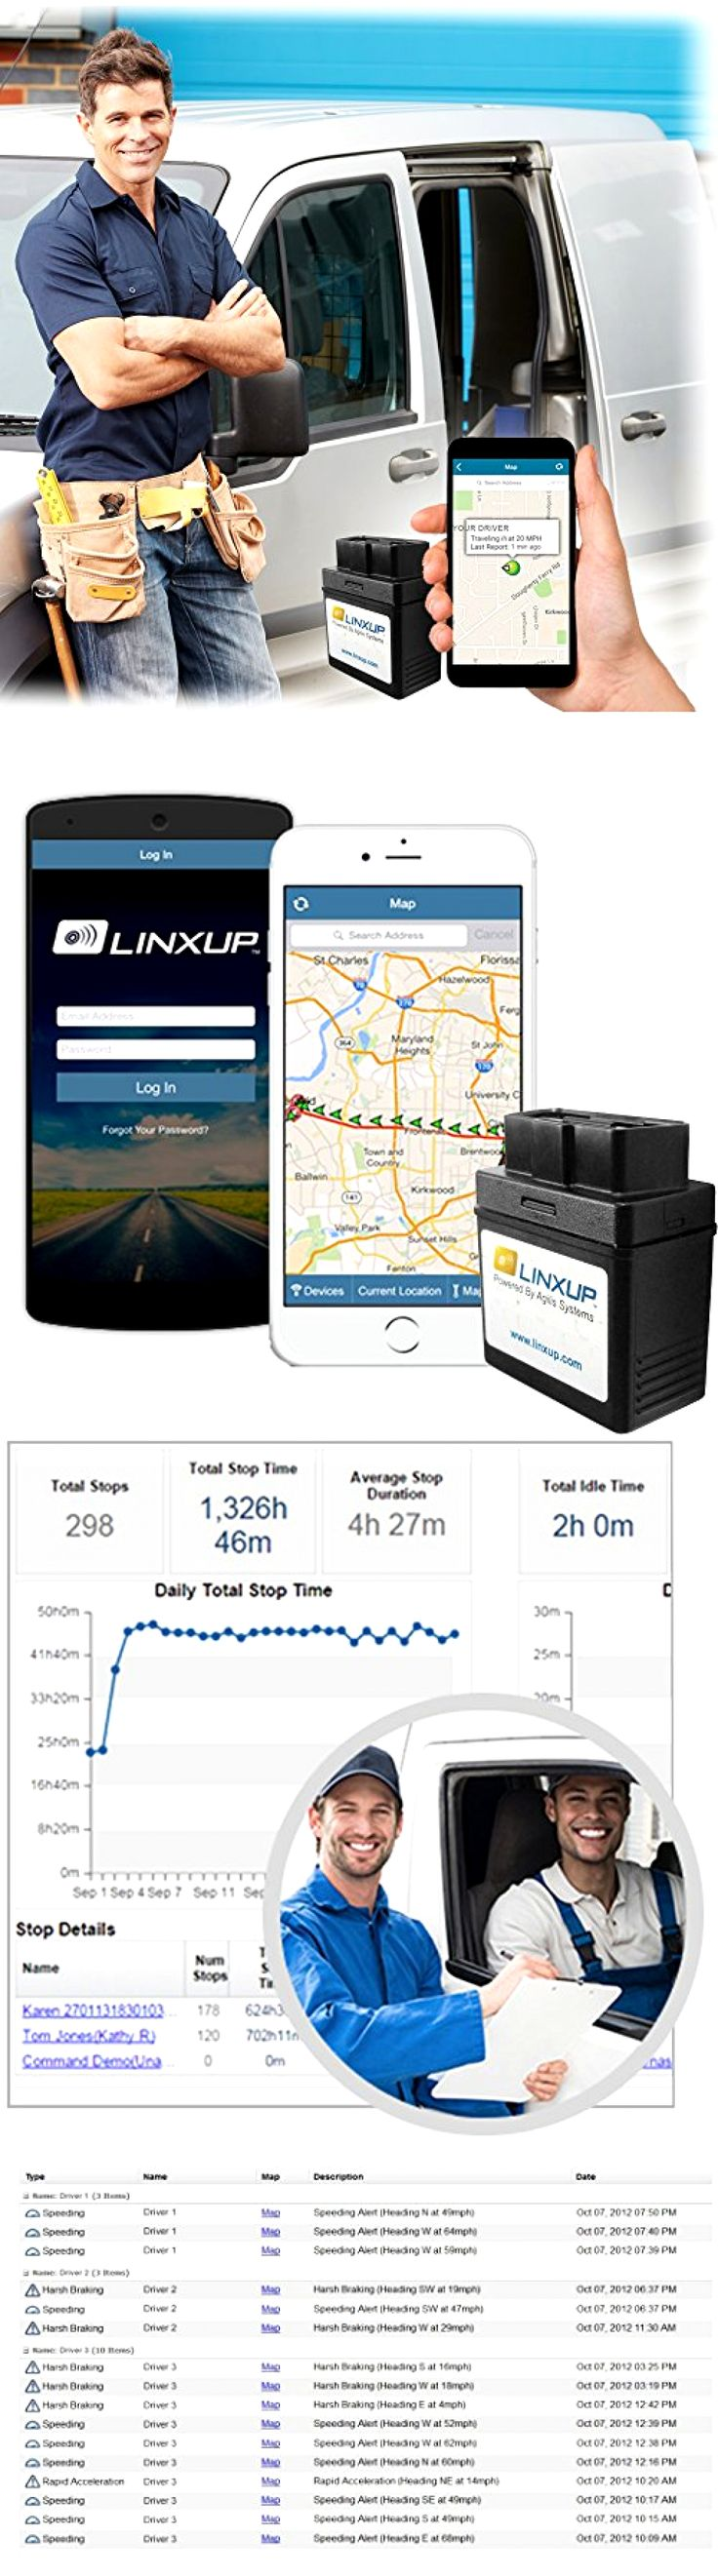 Tracking Devices: Gps Tracking System Device Car Locator With Real Time 3G Obd Linxup No Contracts -> BUY IT NOW ONLY: $32.99 on eBay!